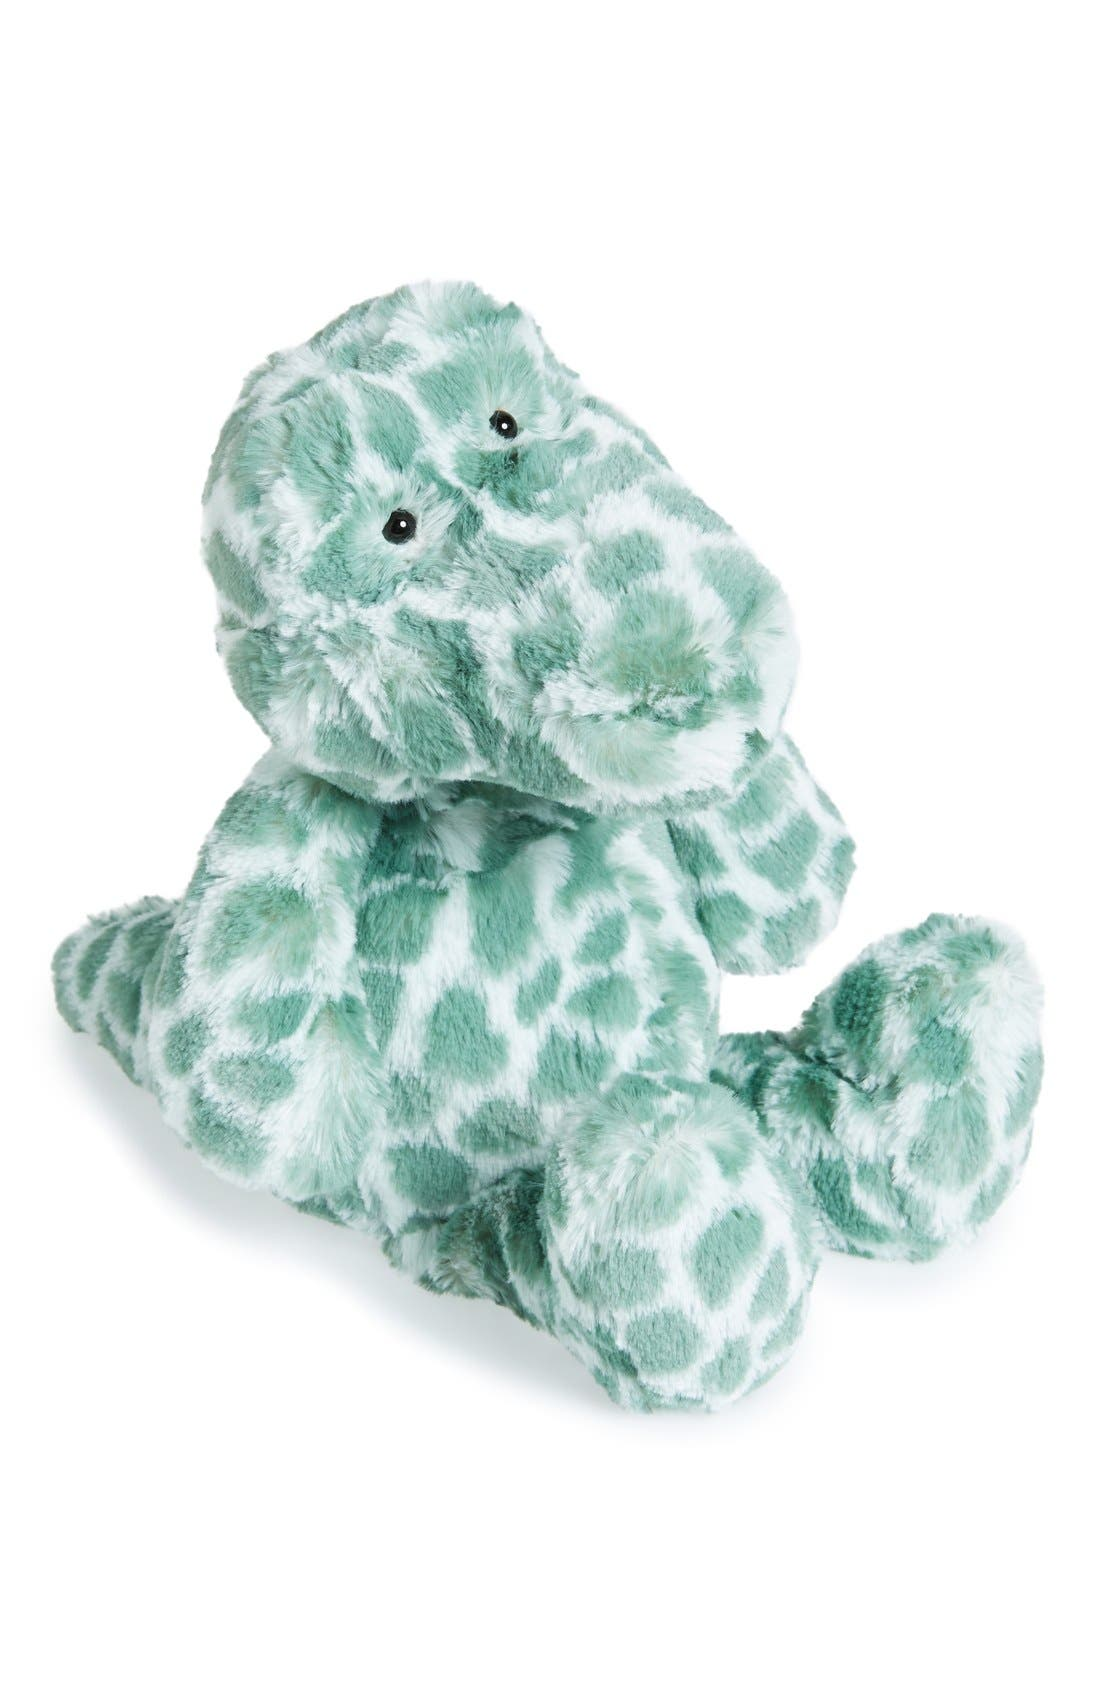 'Dapple Croc' Stuffed Animal,                         Main,                         color, Teal